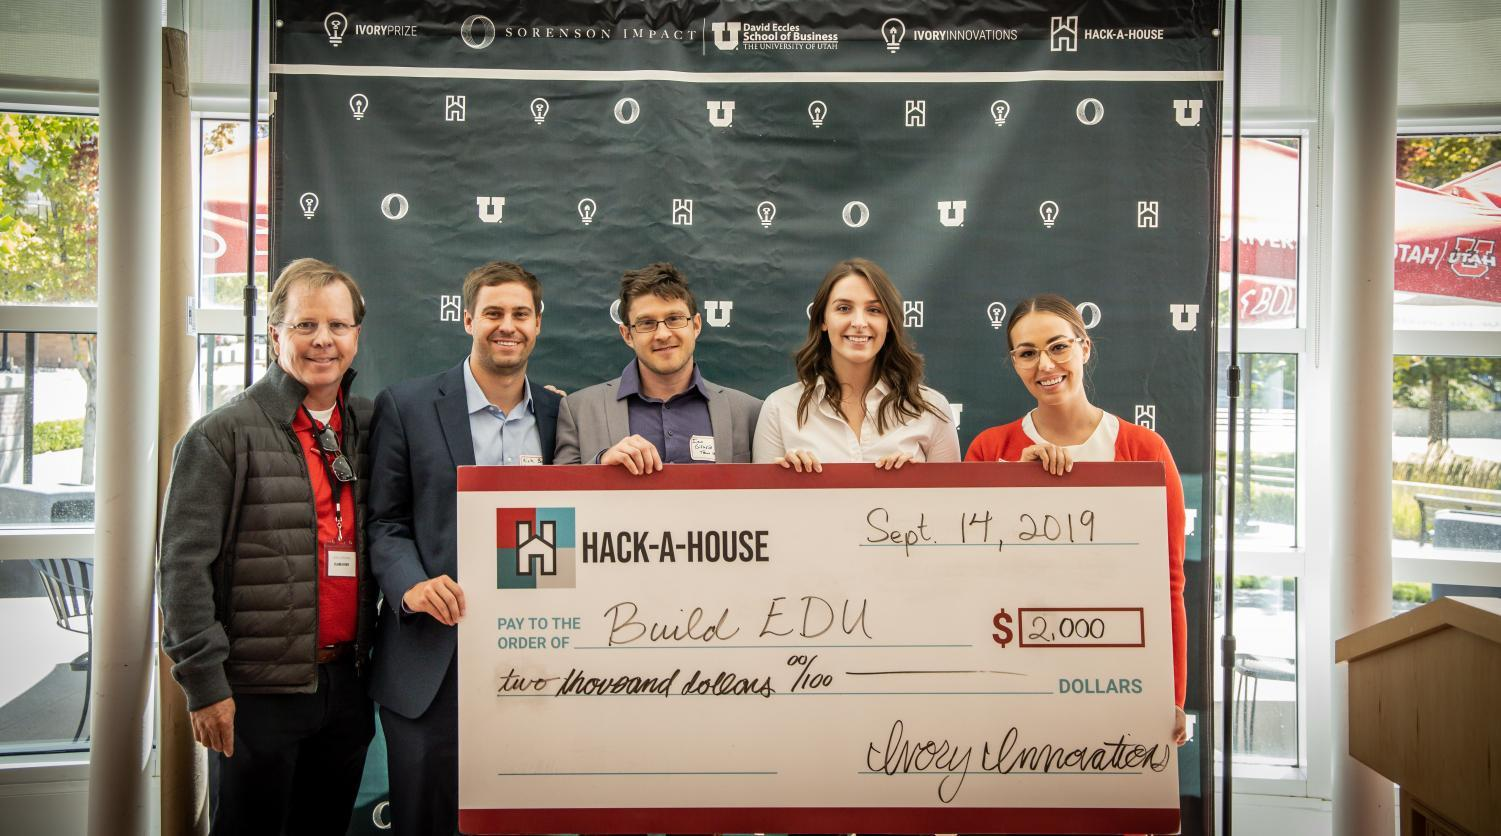 Student winners of Hack-a-House. (Courtesy Abby Ivory)